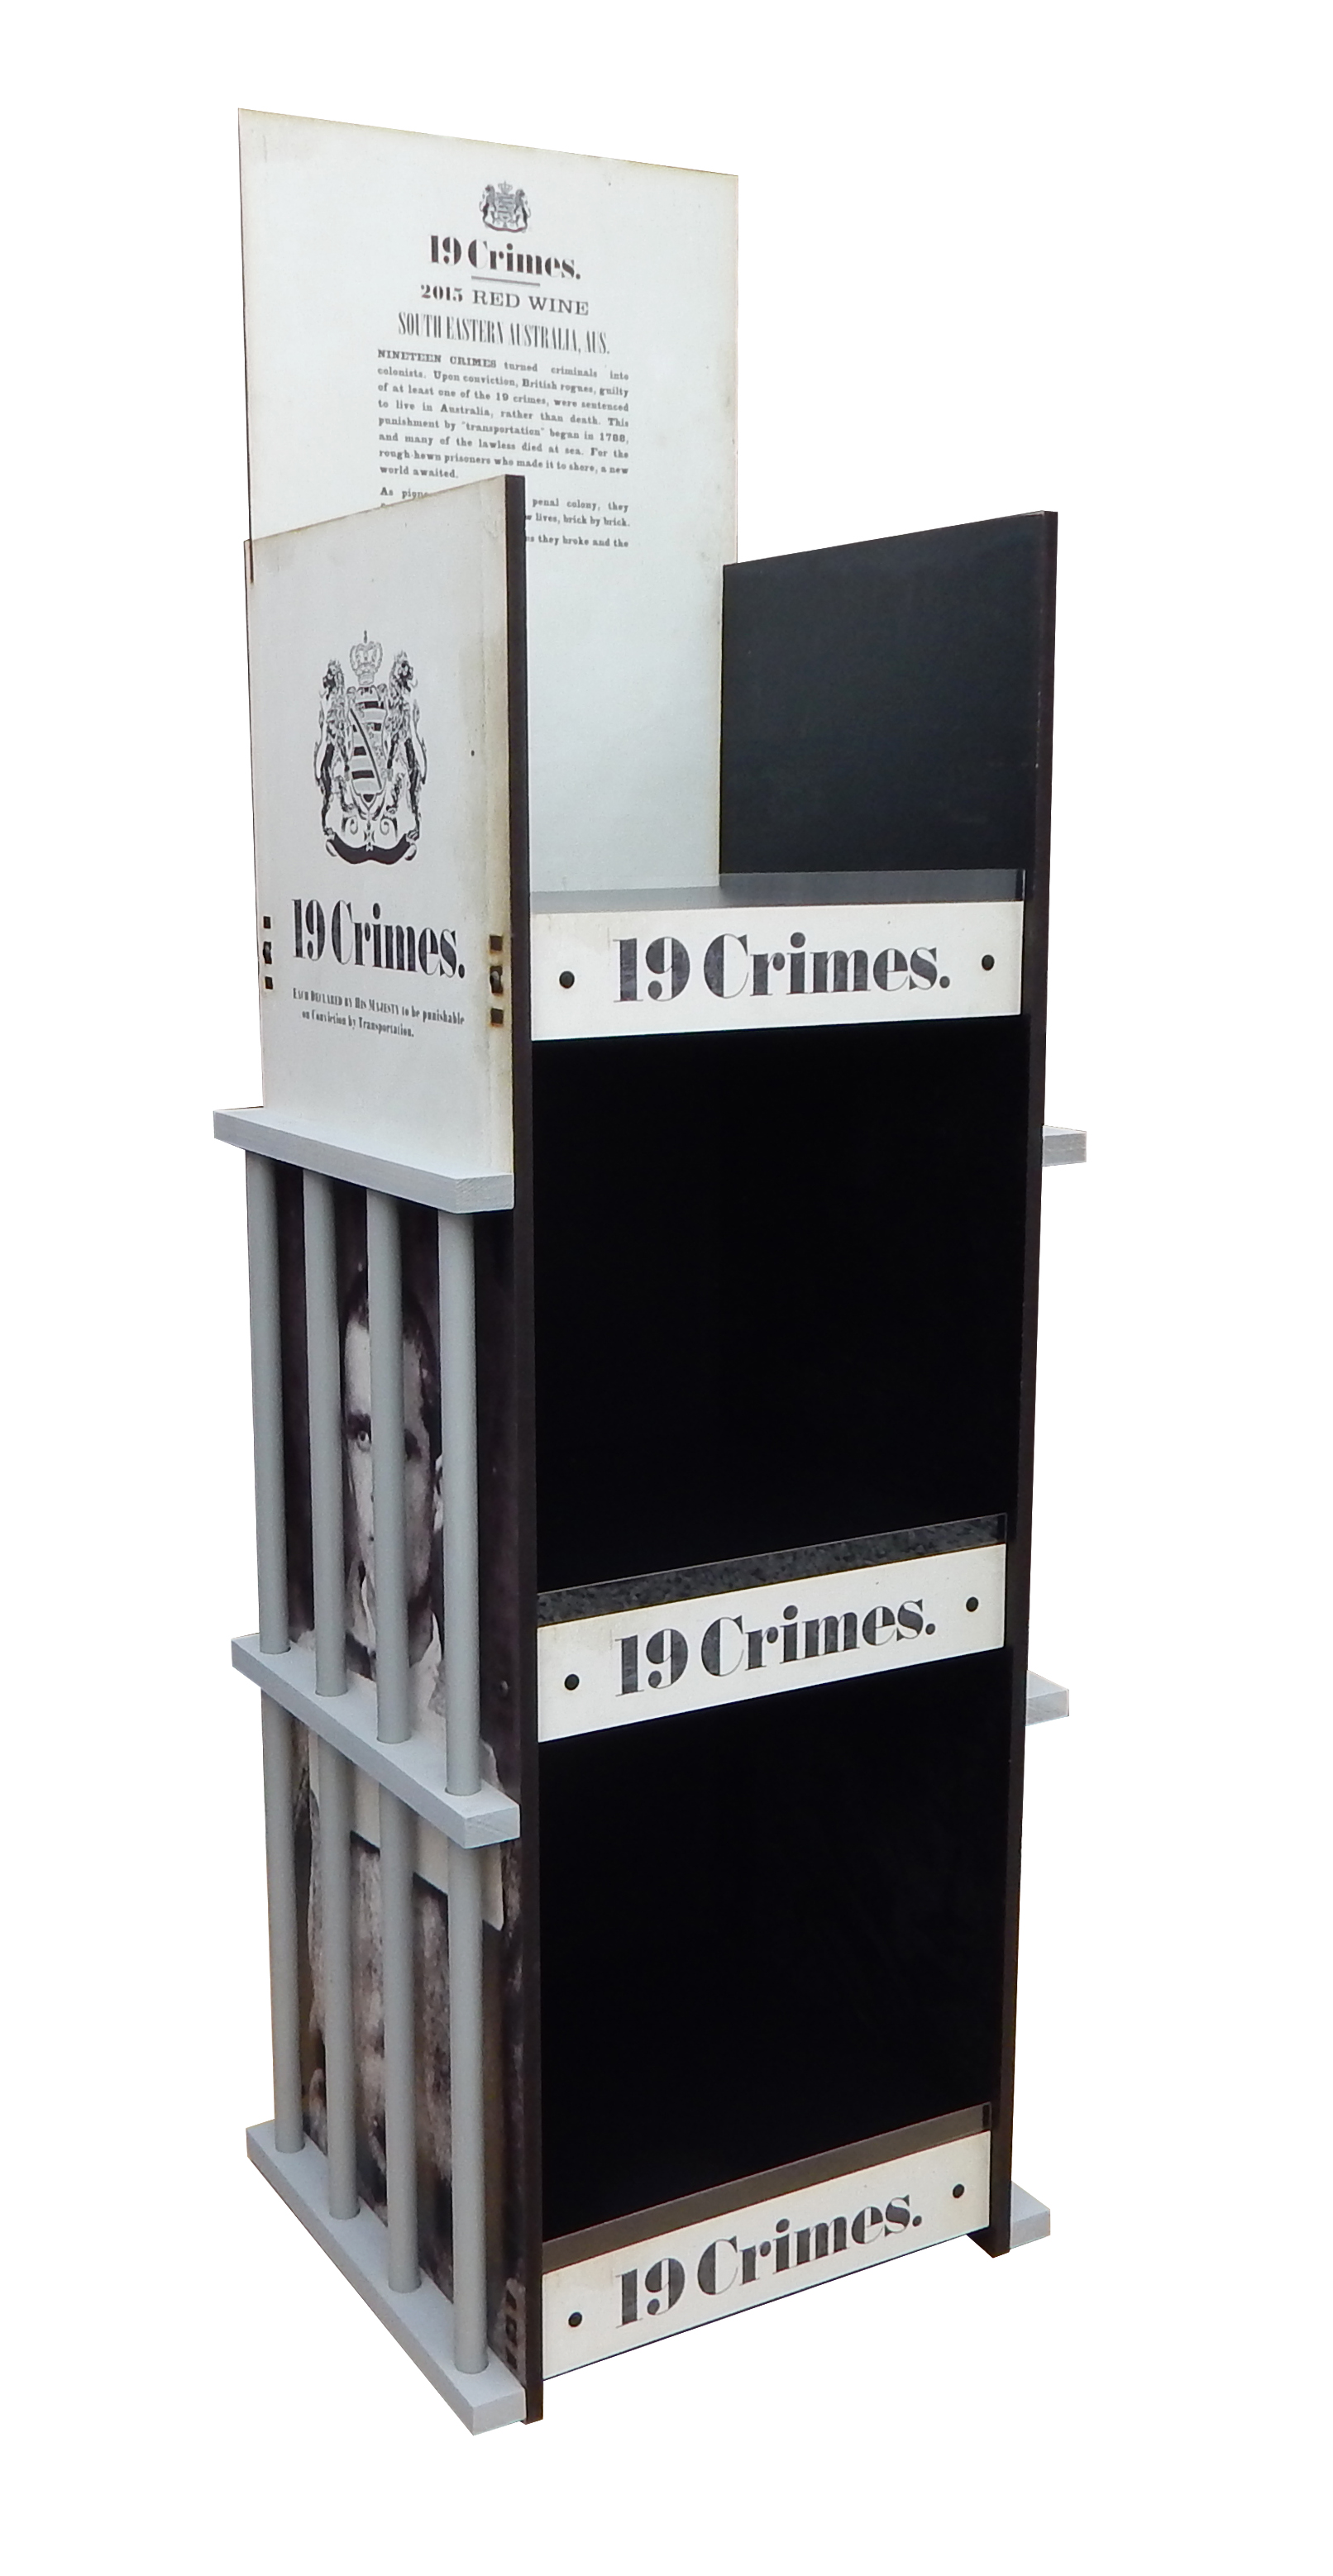 19 Crimes Rack Display